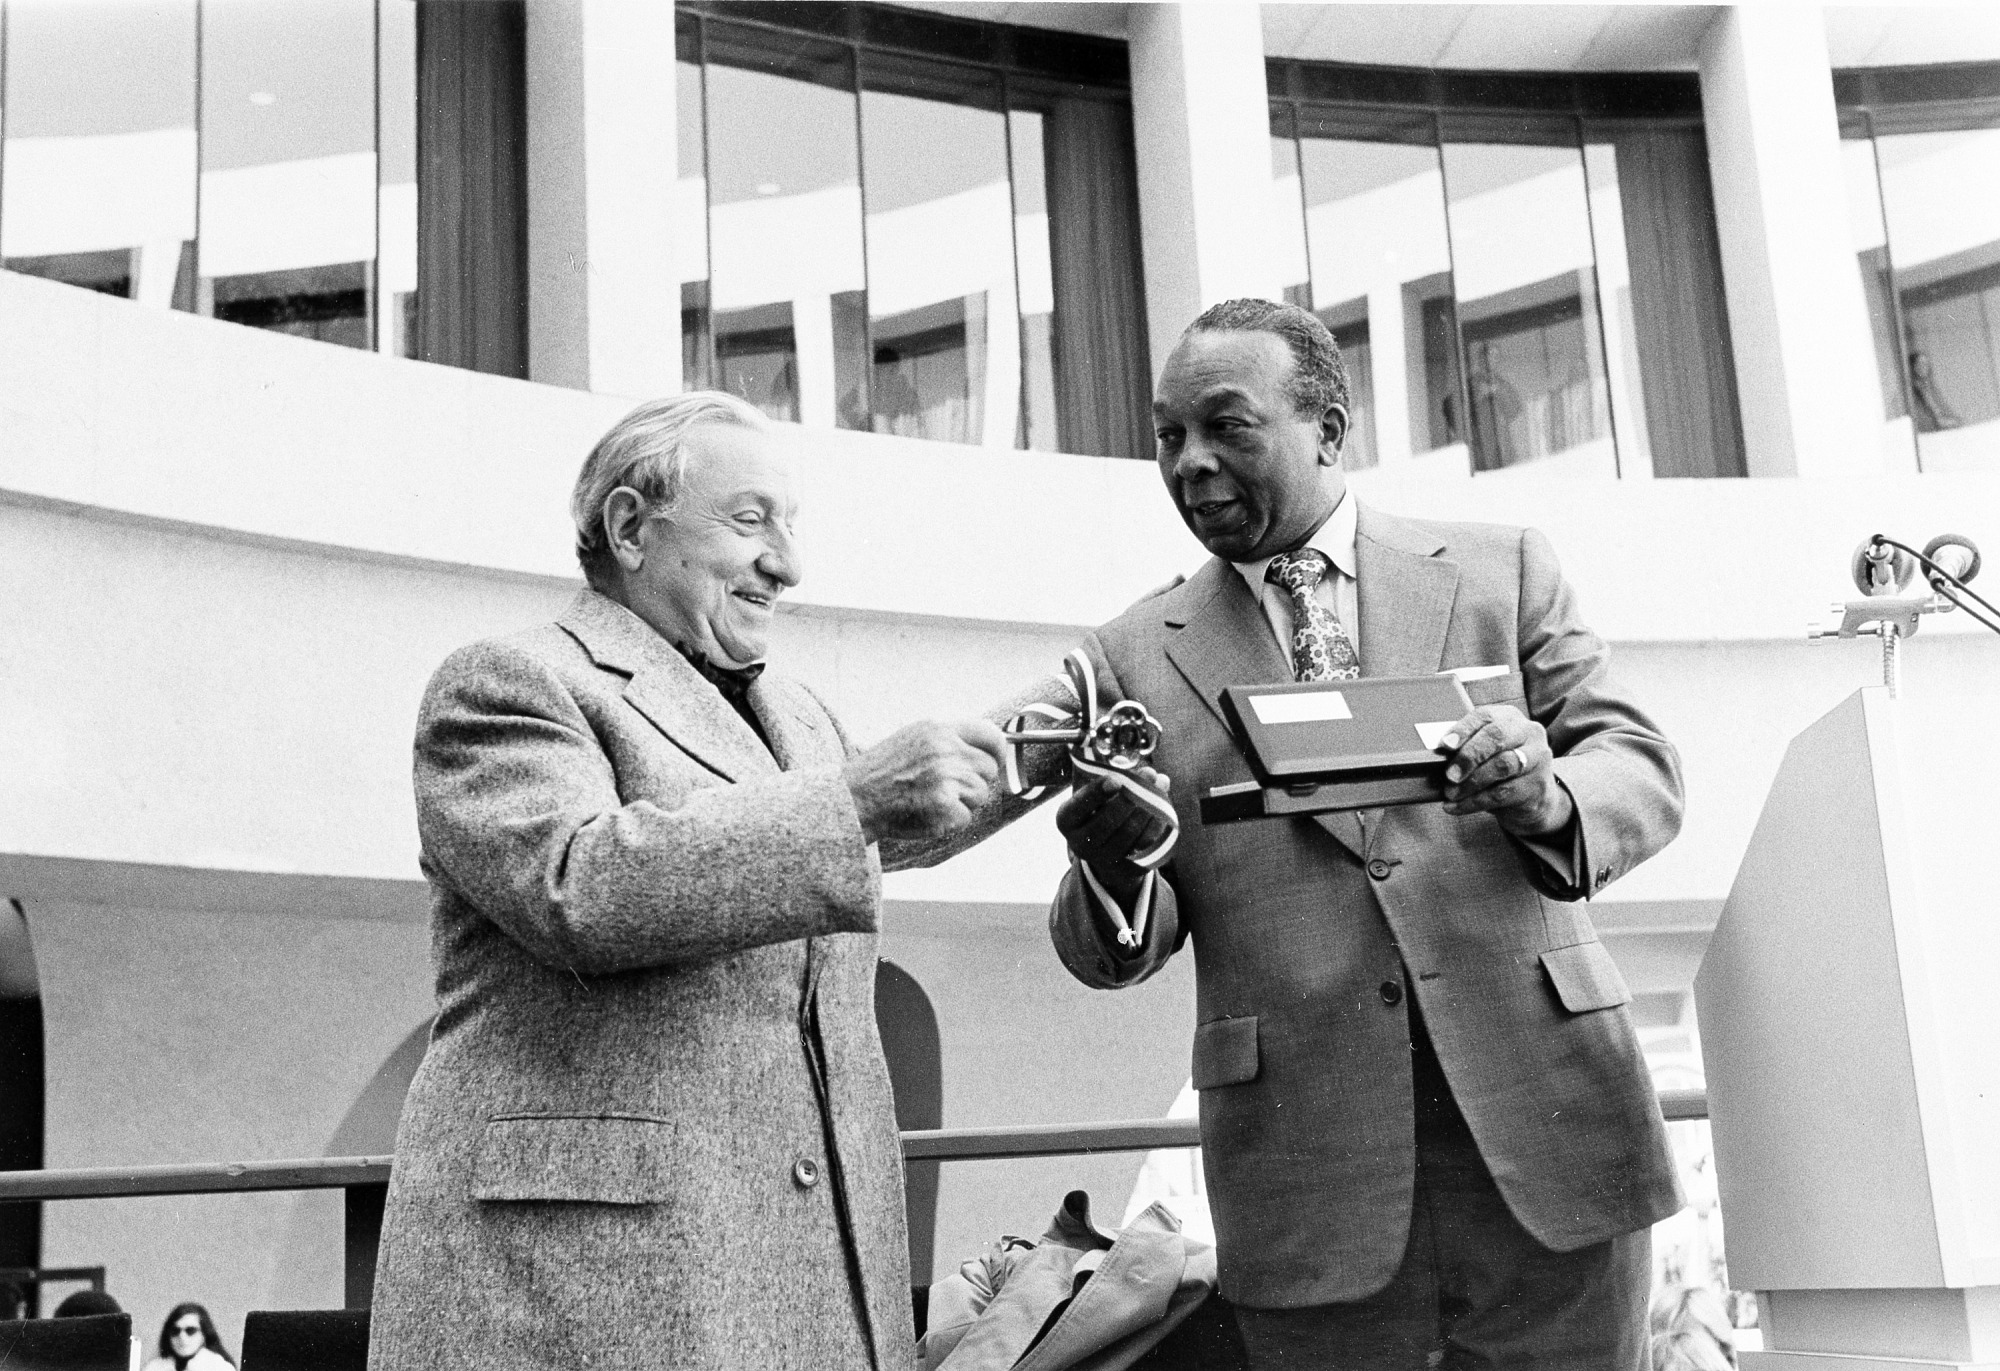 Mayor Washington and Joseph Hirshhorn